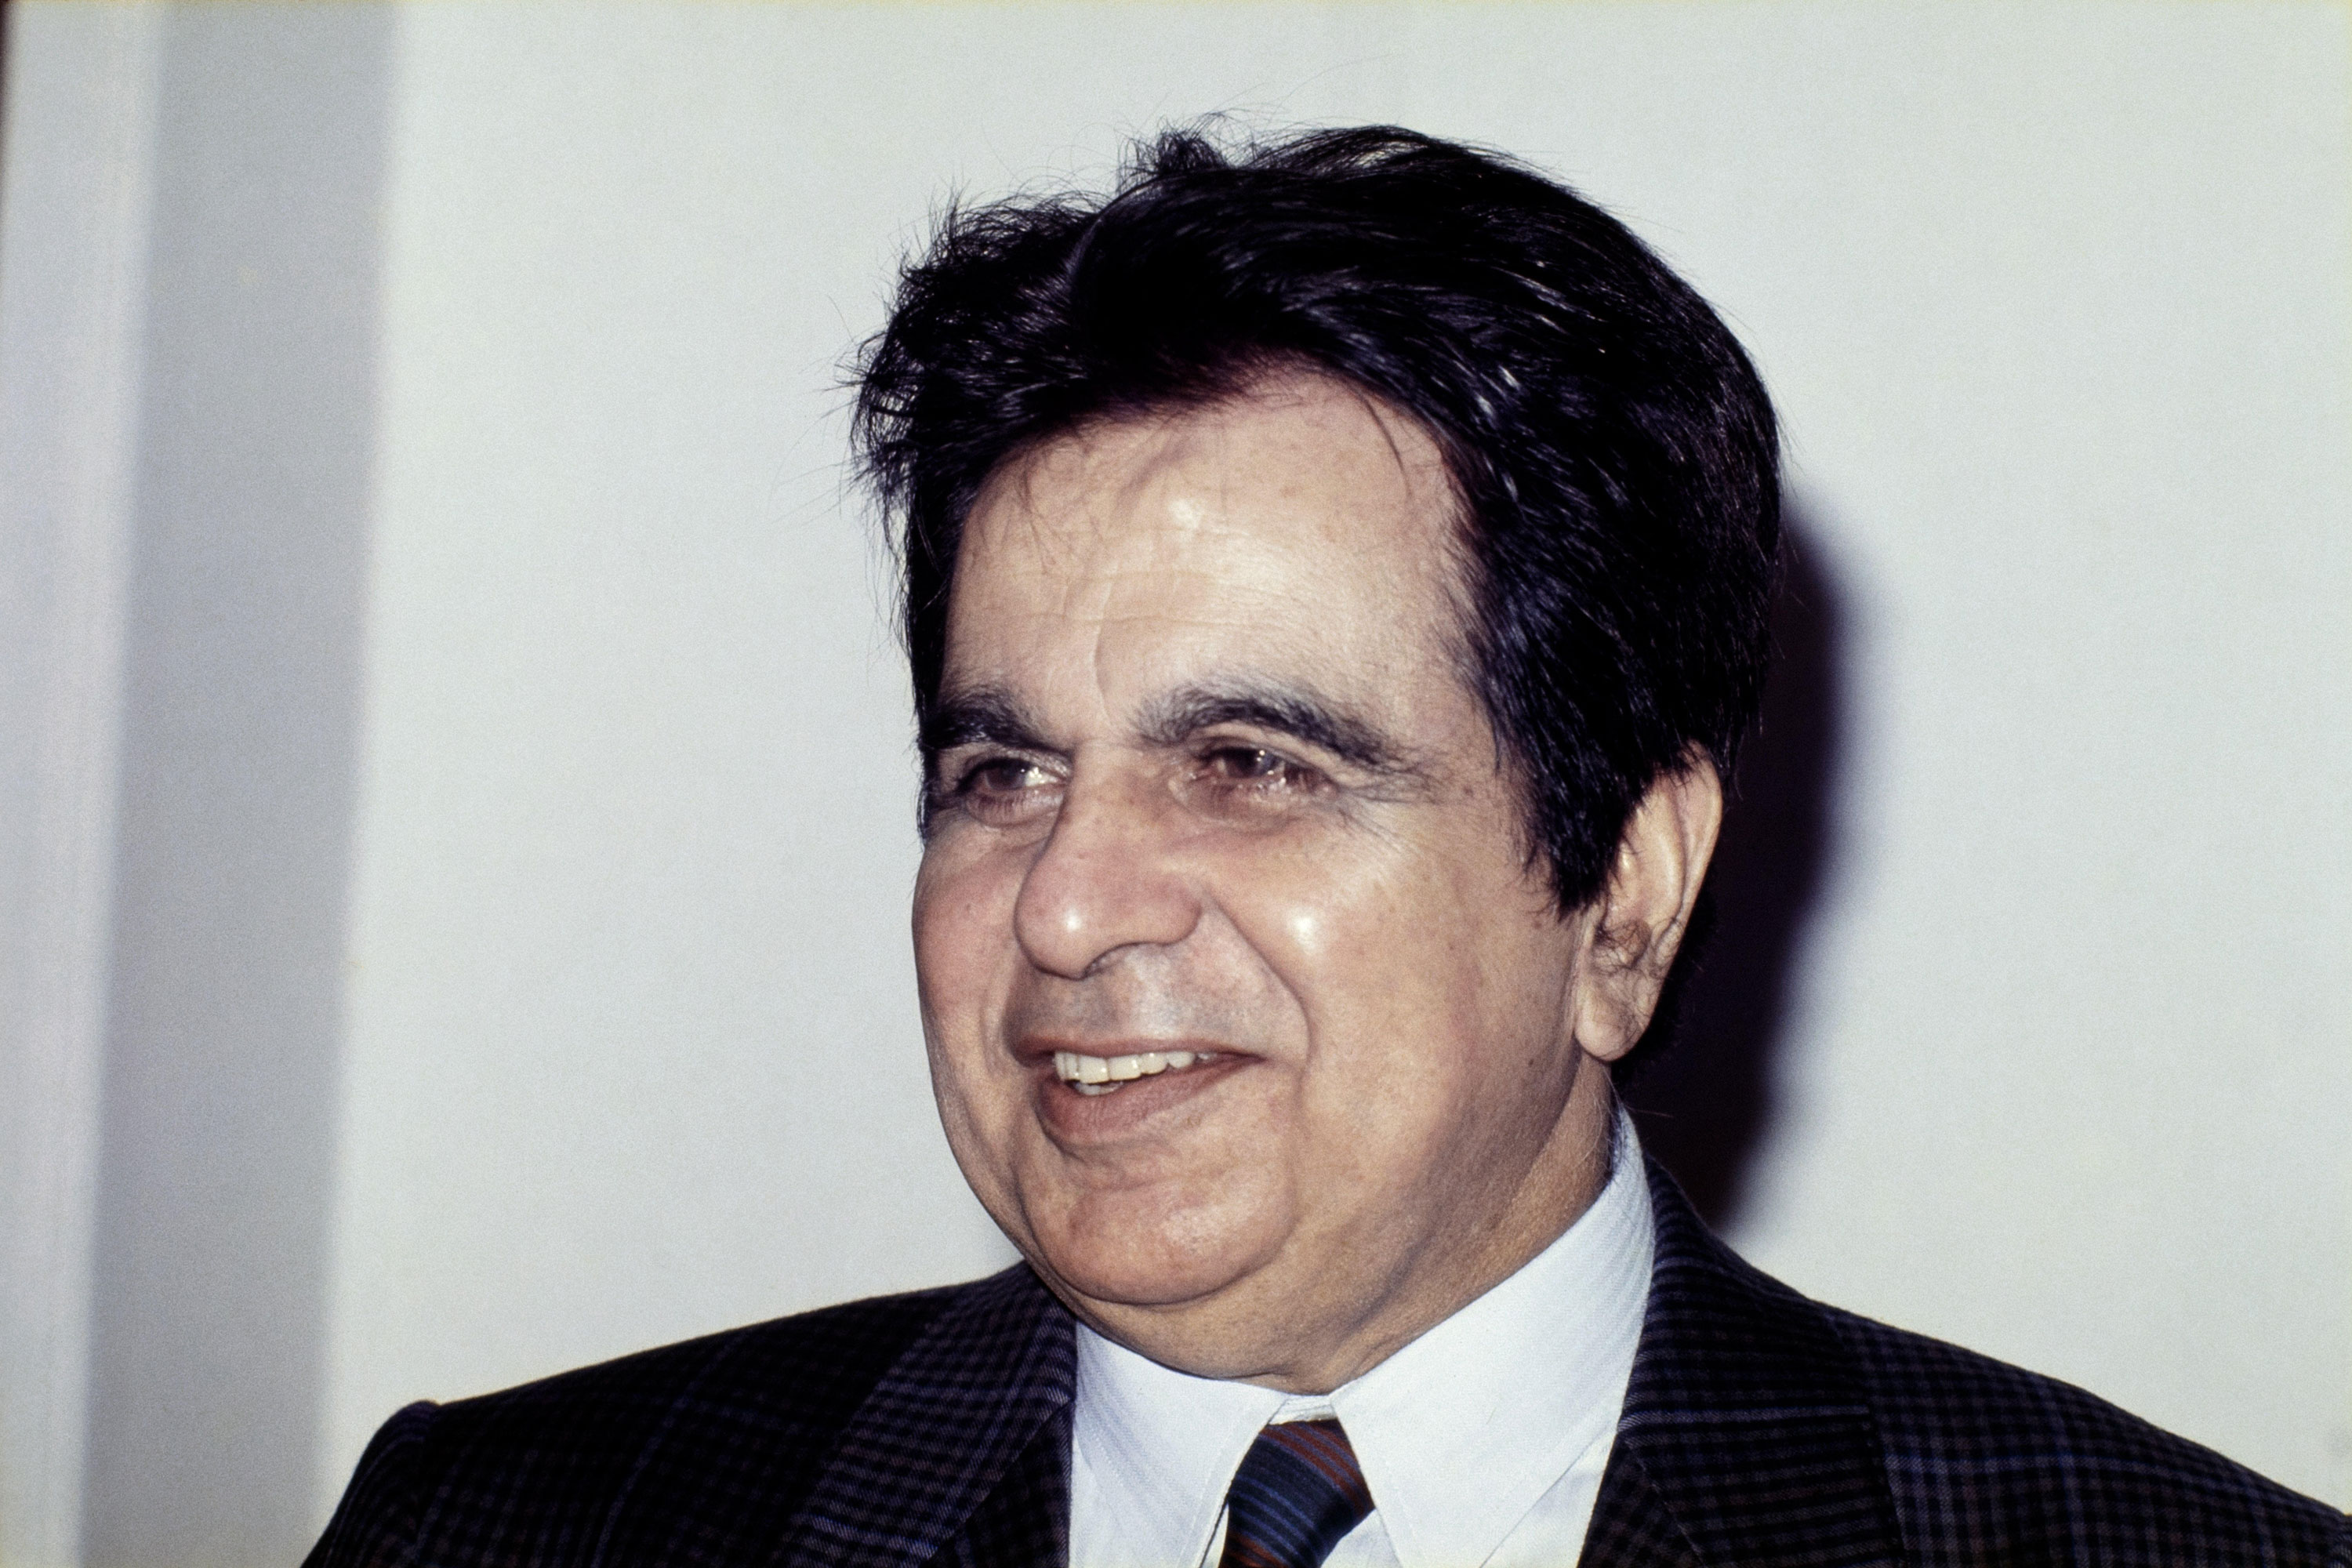 Dilip Kumar, India film legend and Bollywood actor, dies at 98 - CNN Style